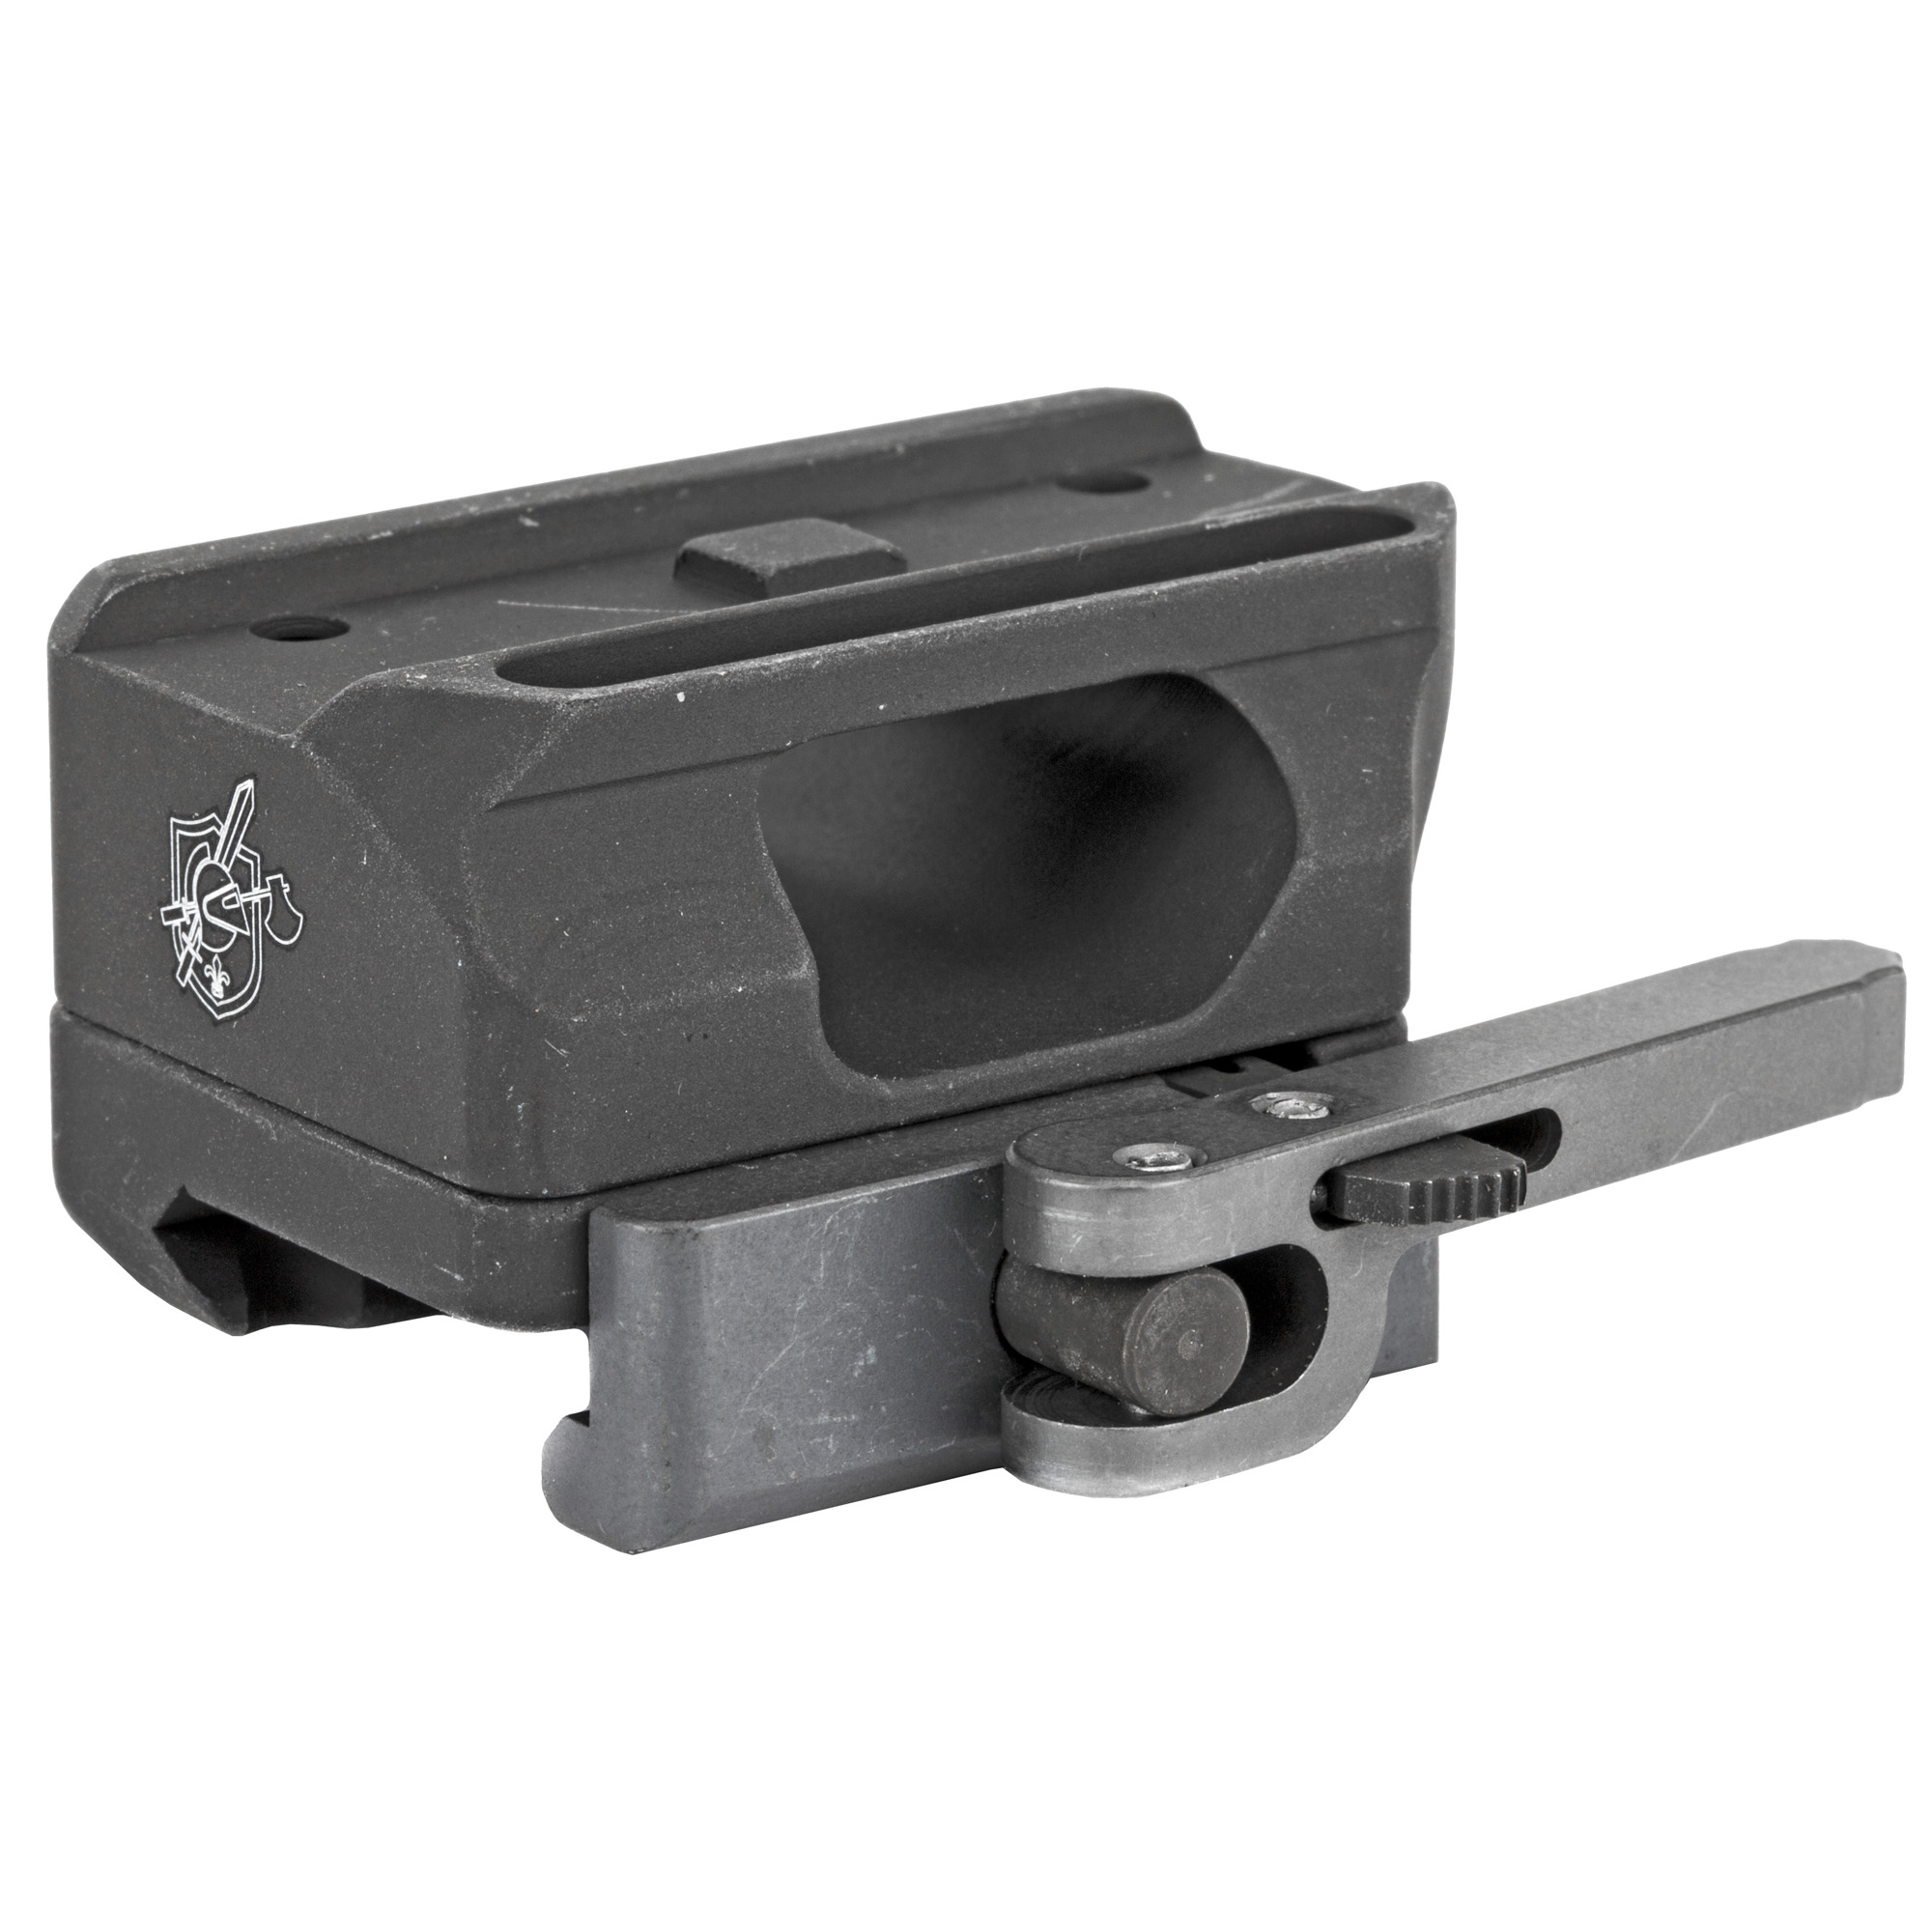 """This KAC Aimpoint Micro Mount features a quick detach"""" throw lever attachment system."""